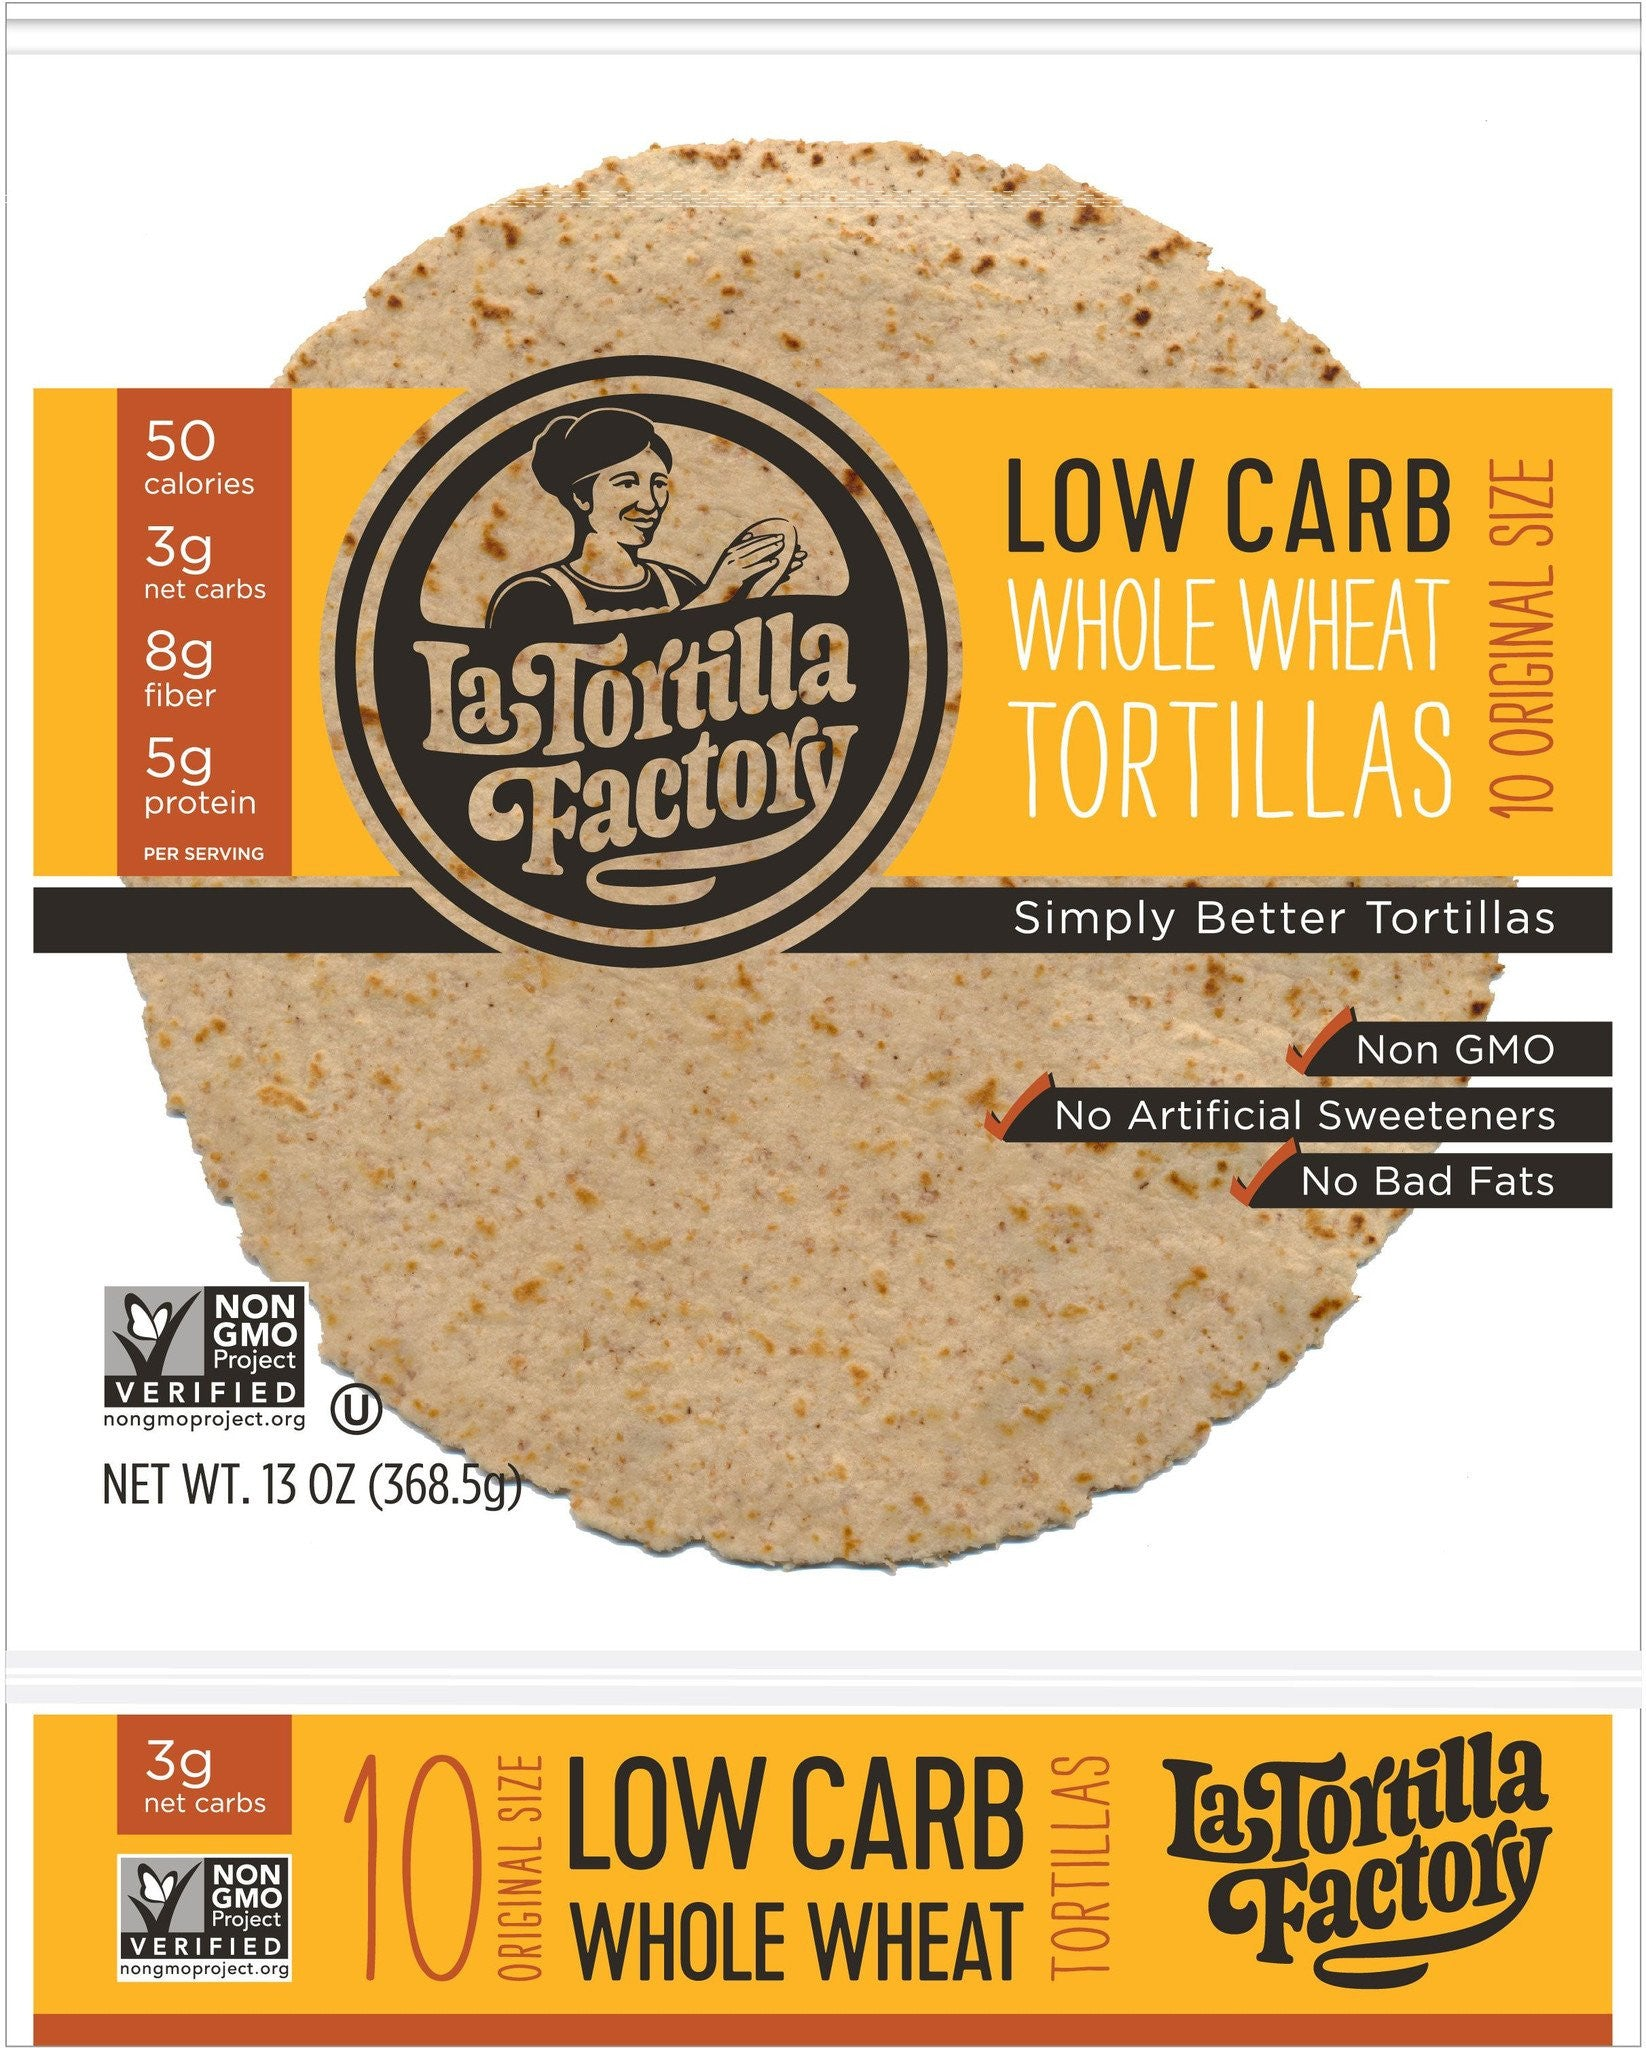 La Tortilla Factory Low Carb, High Fiber Tortillas, Made with Whole Wheat, Original Size, 10 Ea (Pack of 10)